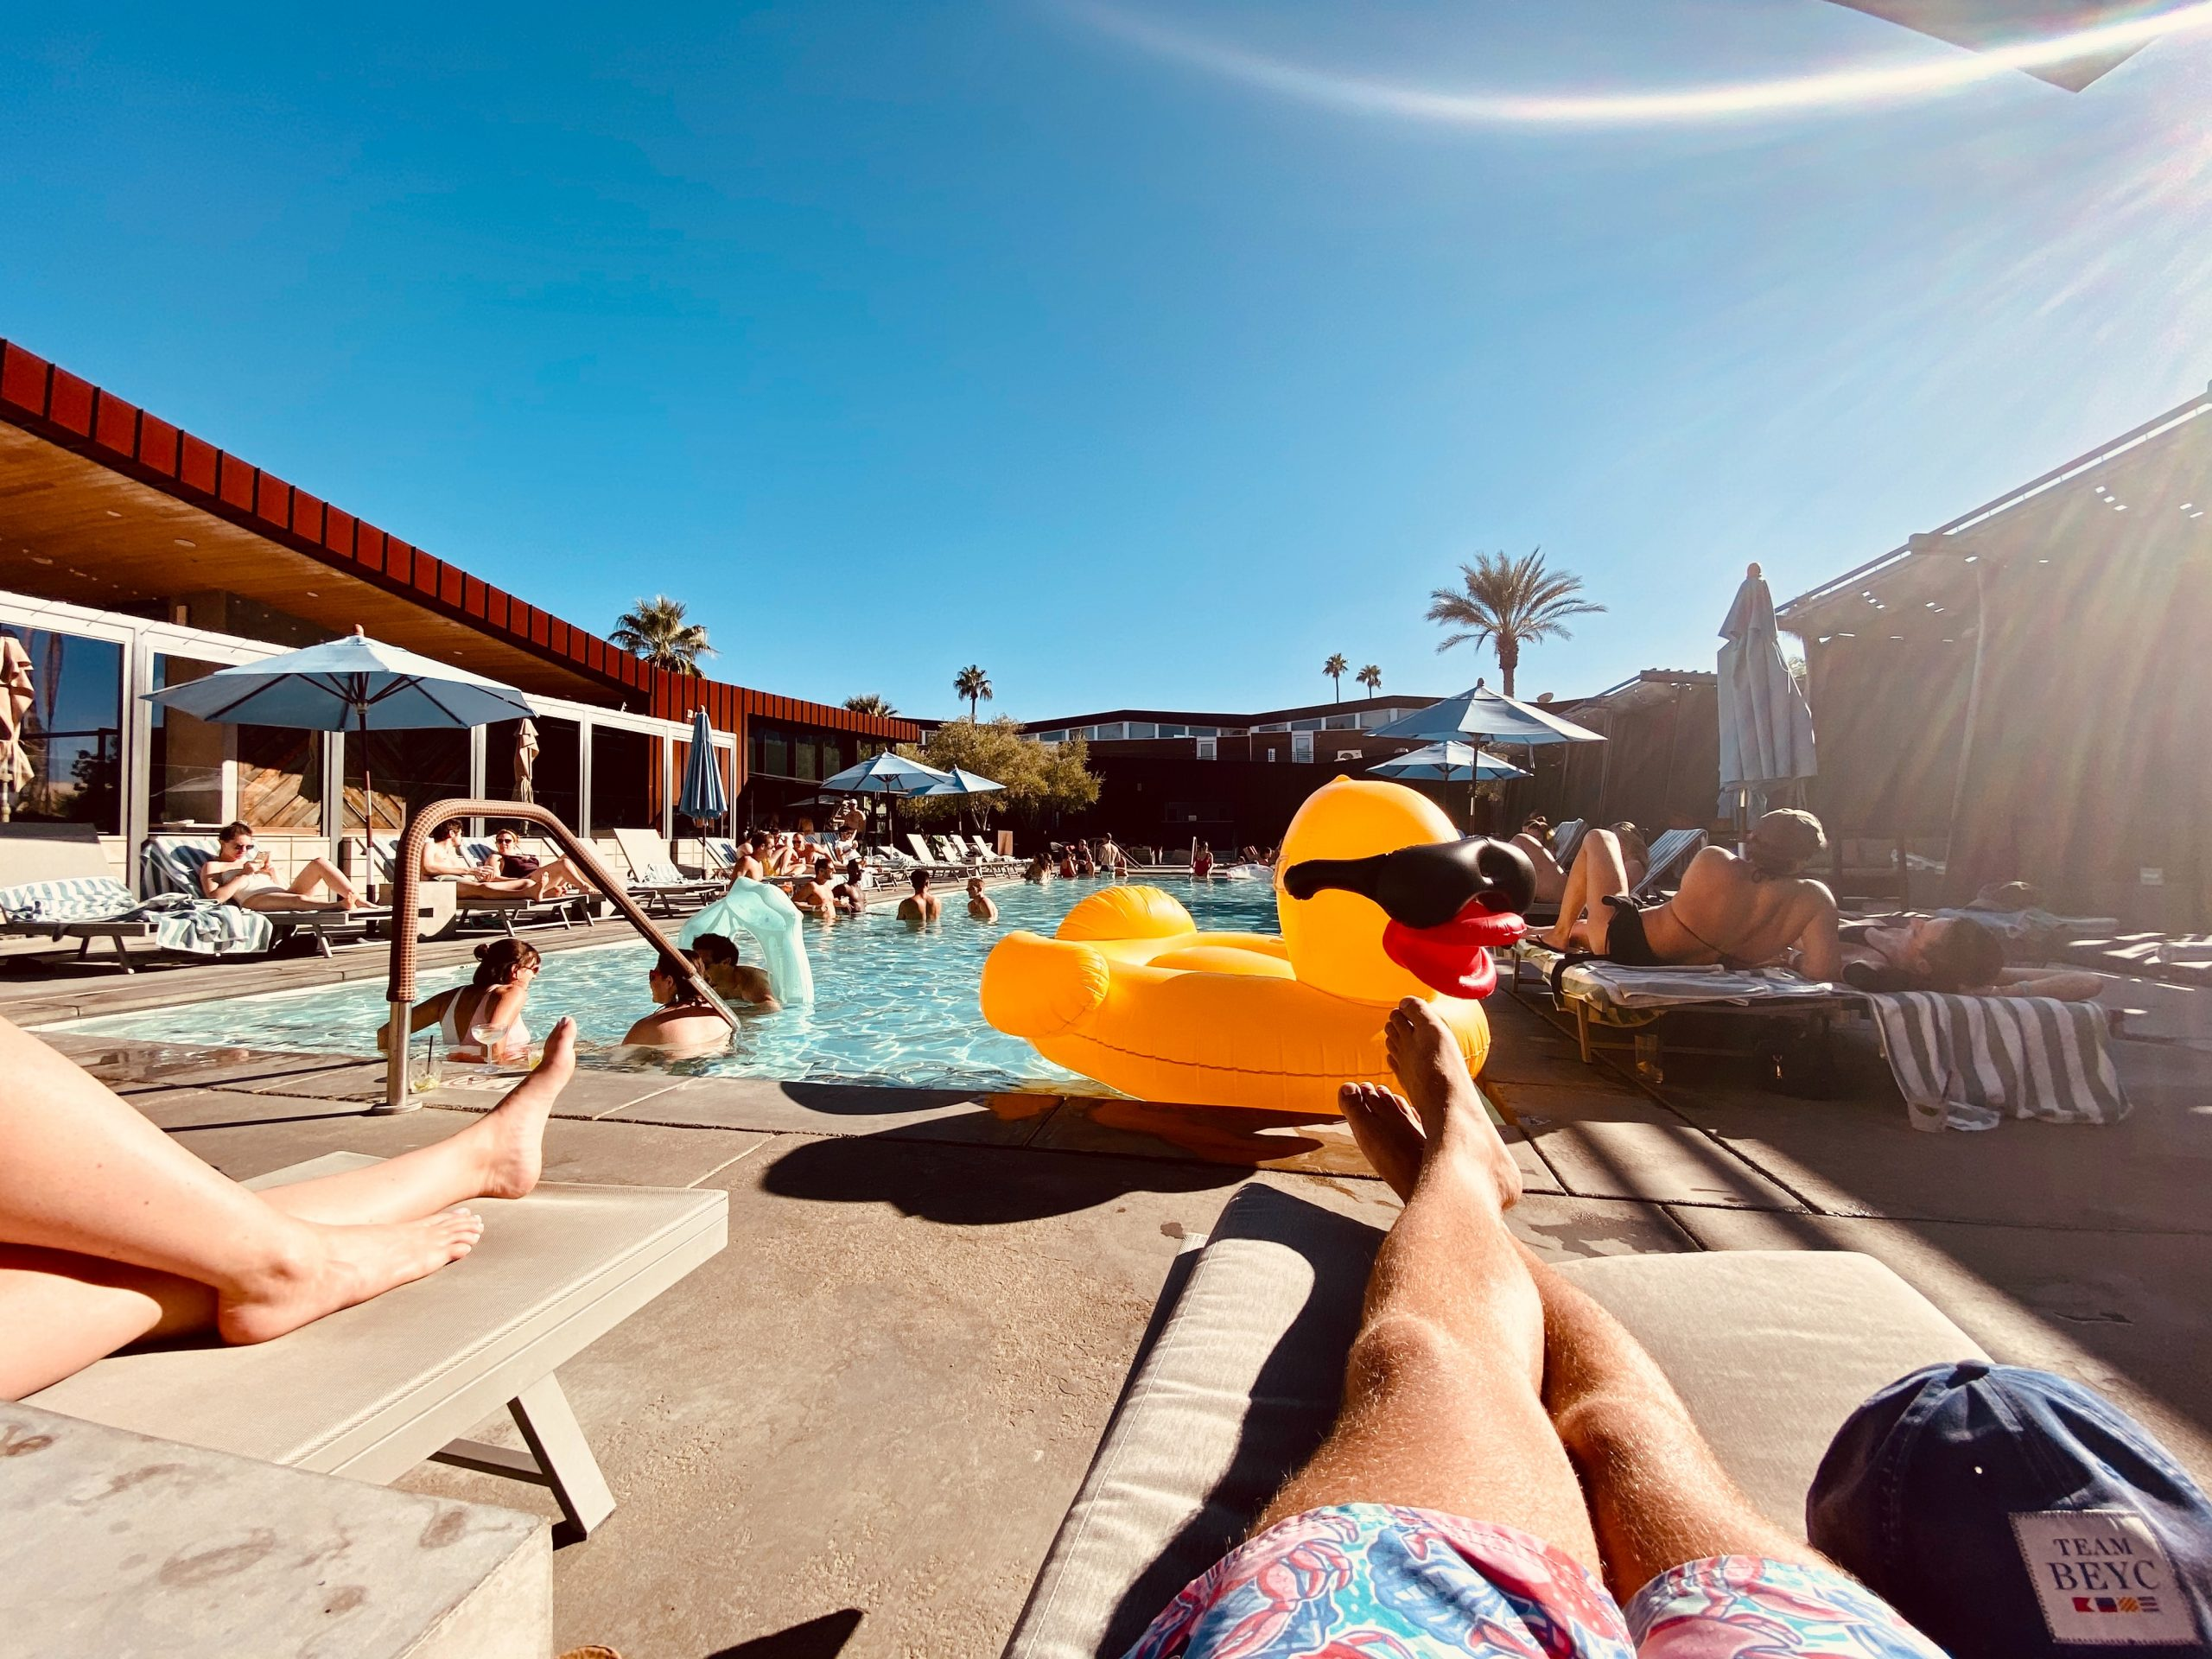 5 Tips to Clean Your Pool After a Pool Party